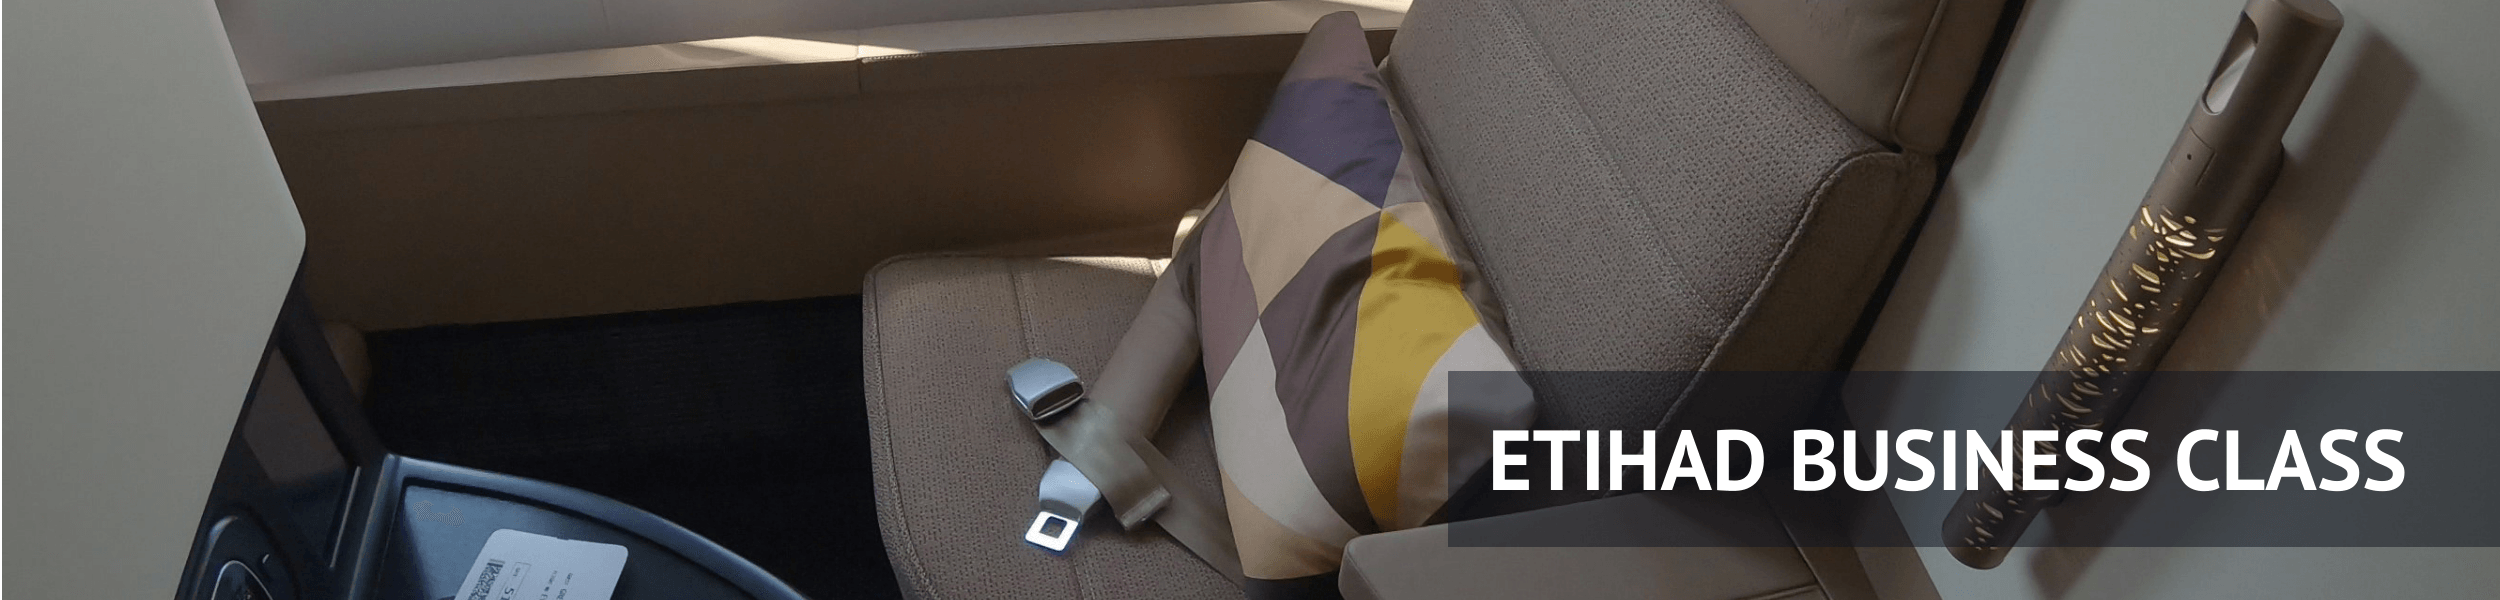 Etihad Business Class Review 787-9 Dreamliner